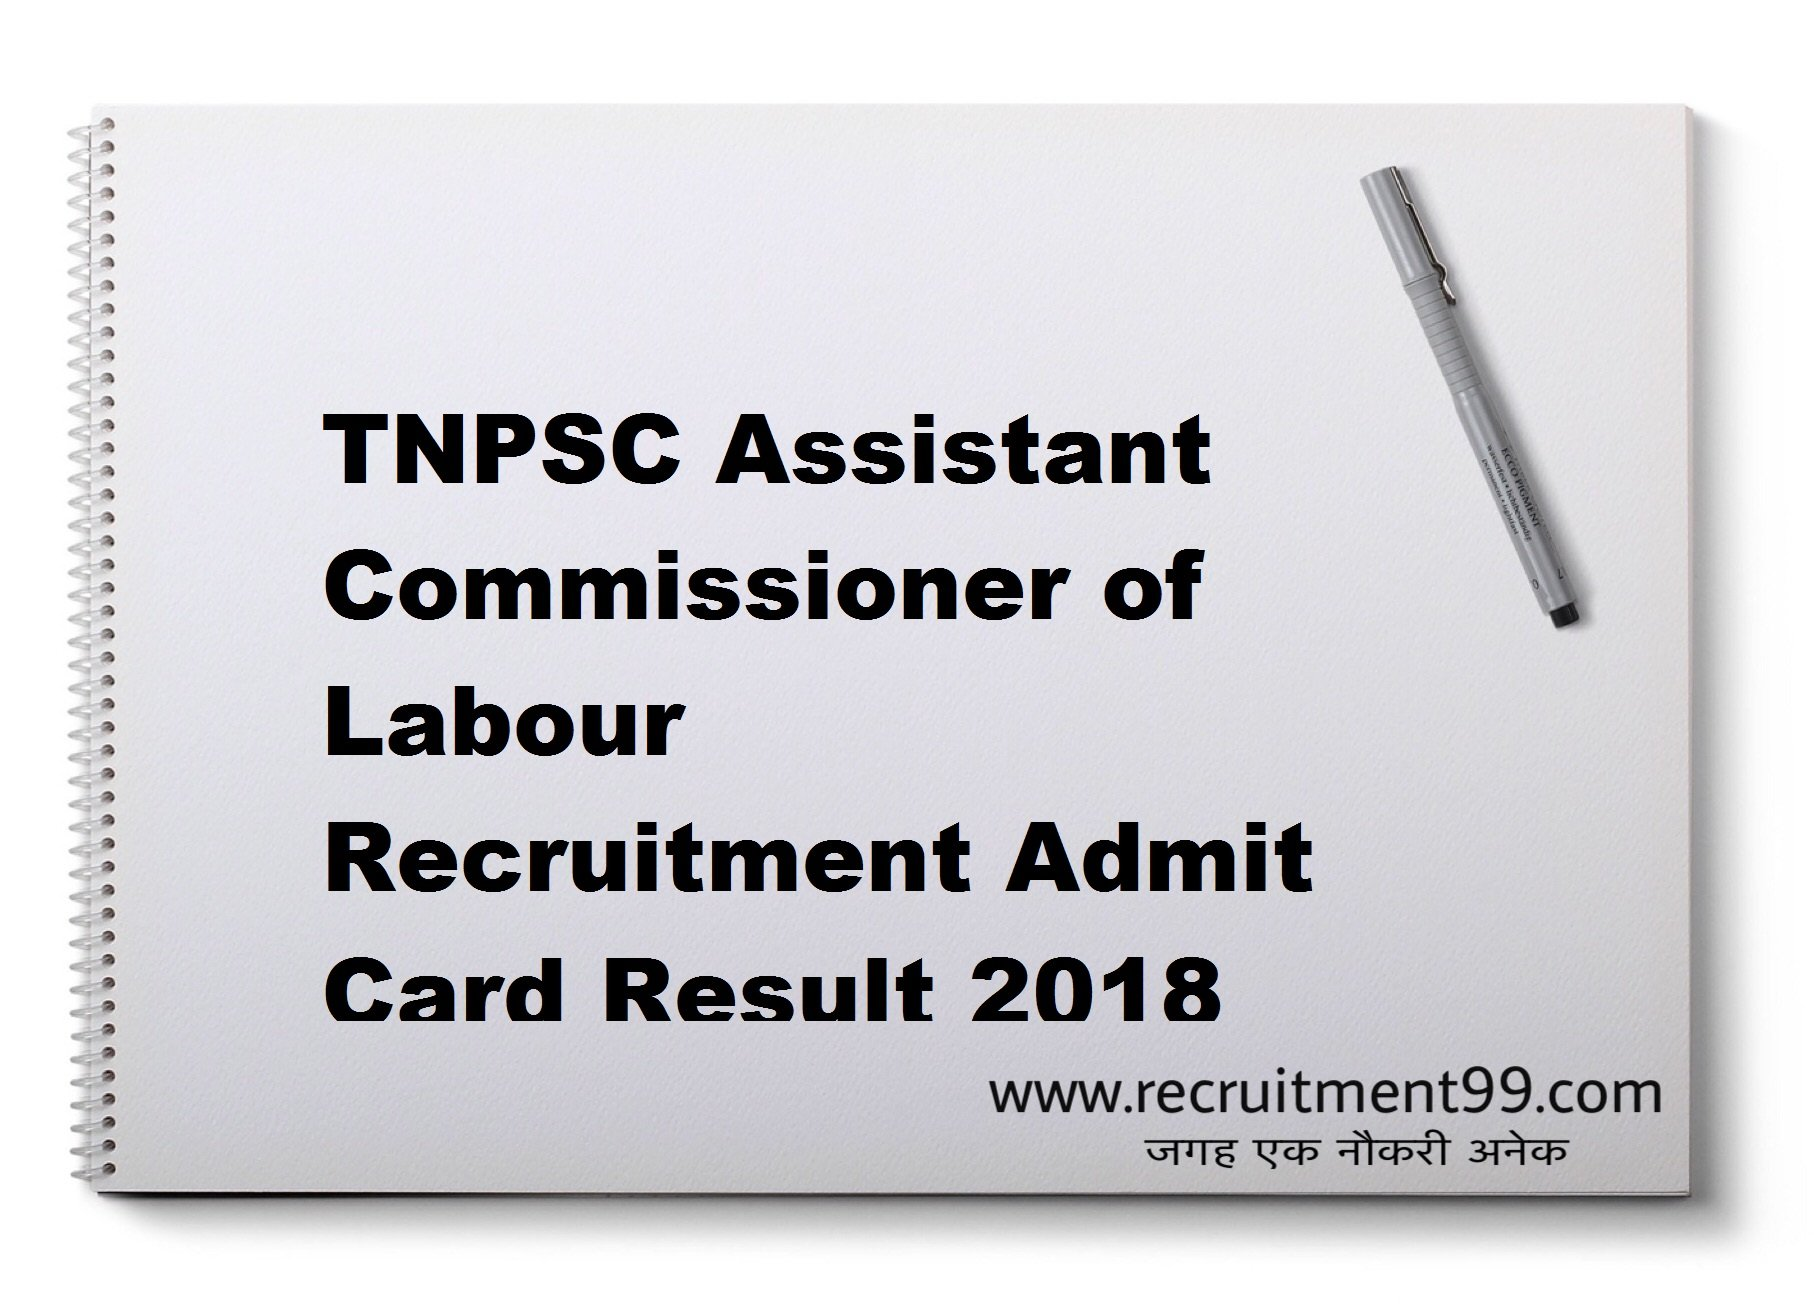 TNPSC Assistant Commissioner of Labour Recruitment Admit Card Result 2018